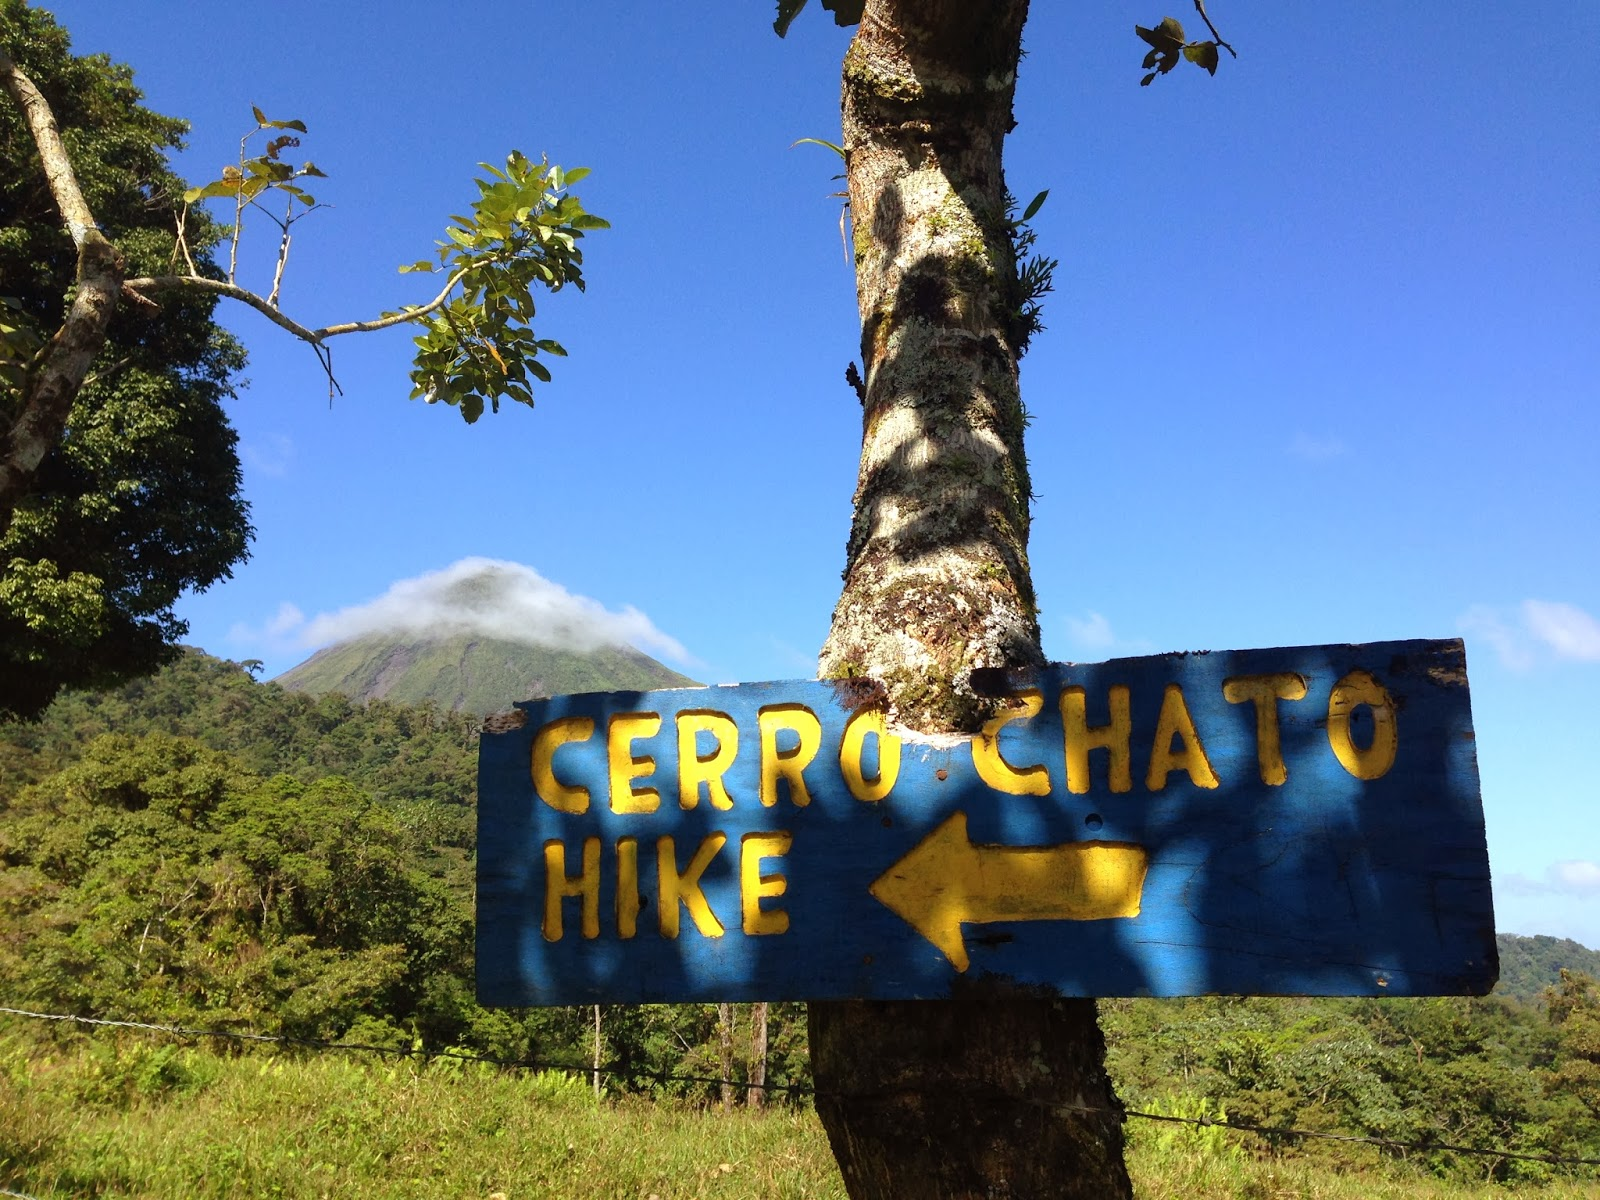 Cerro Chato Hike